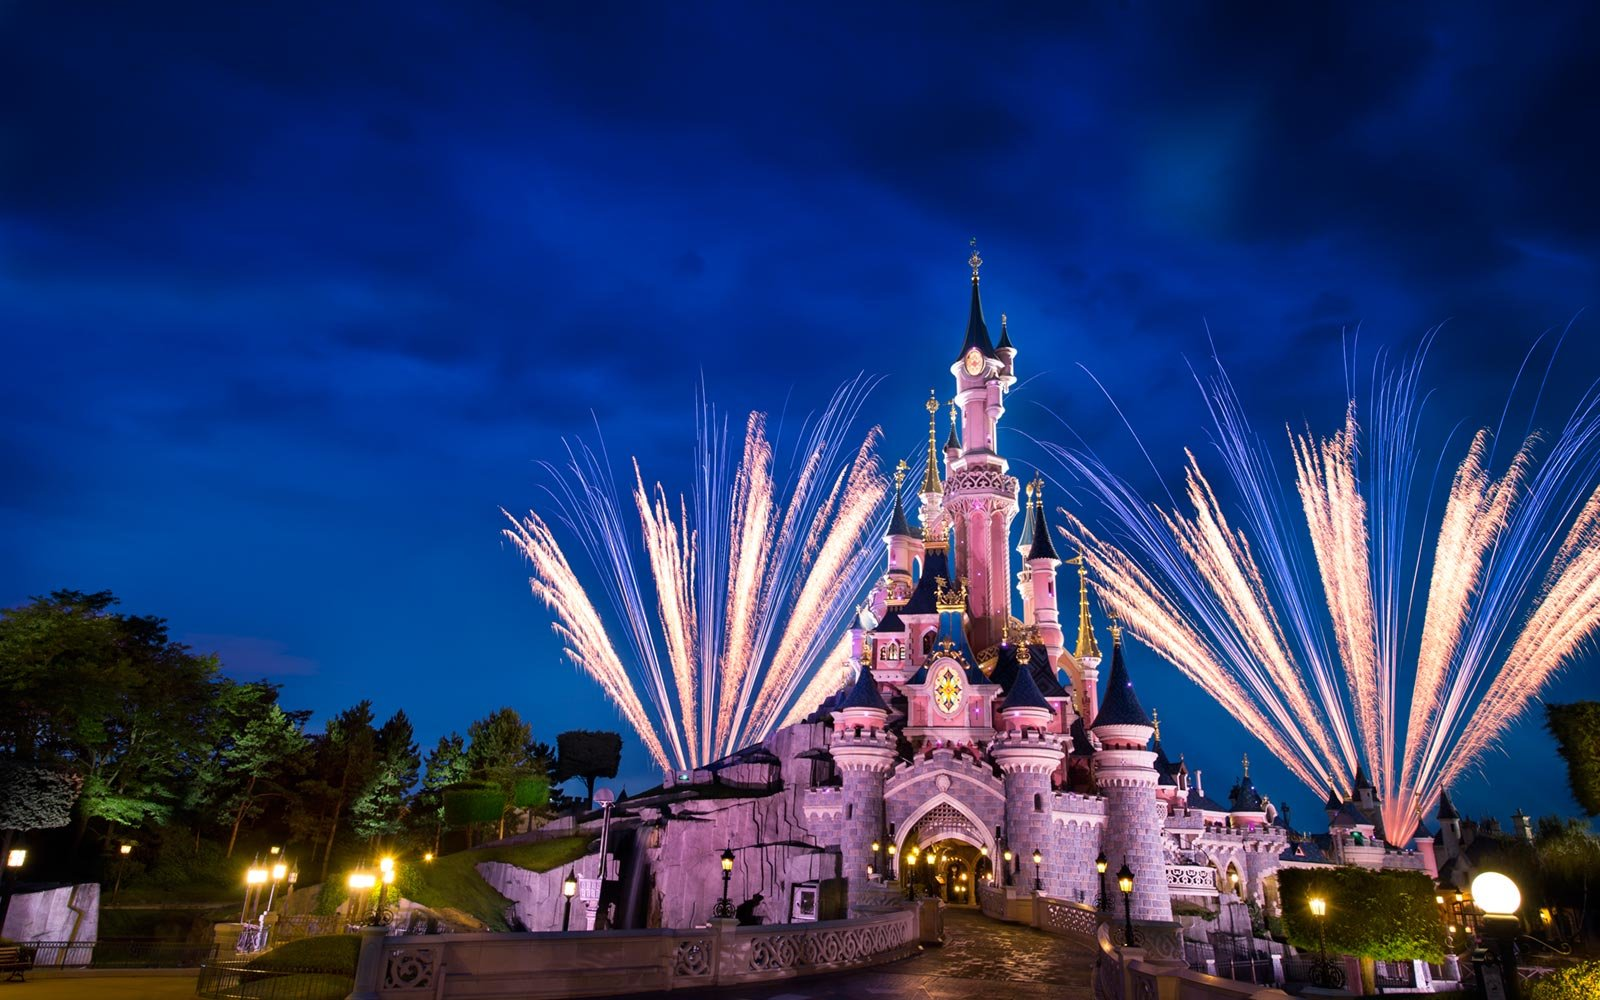 fireworks-disneyland-paris-france-DISNEYPARIS0307.jpg